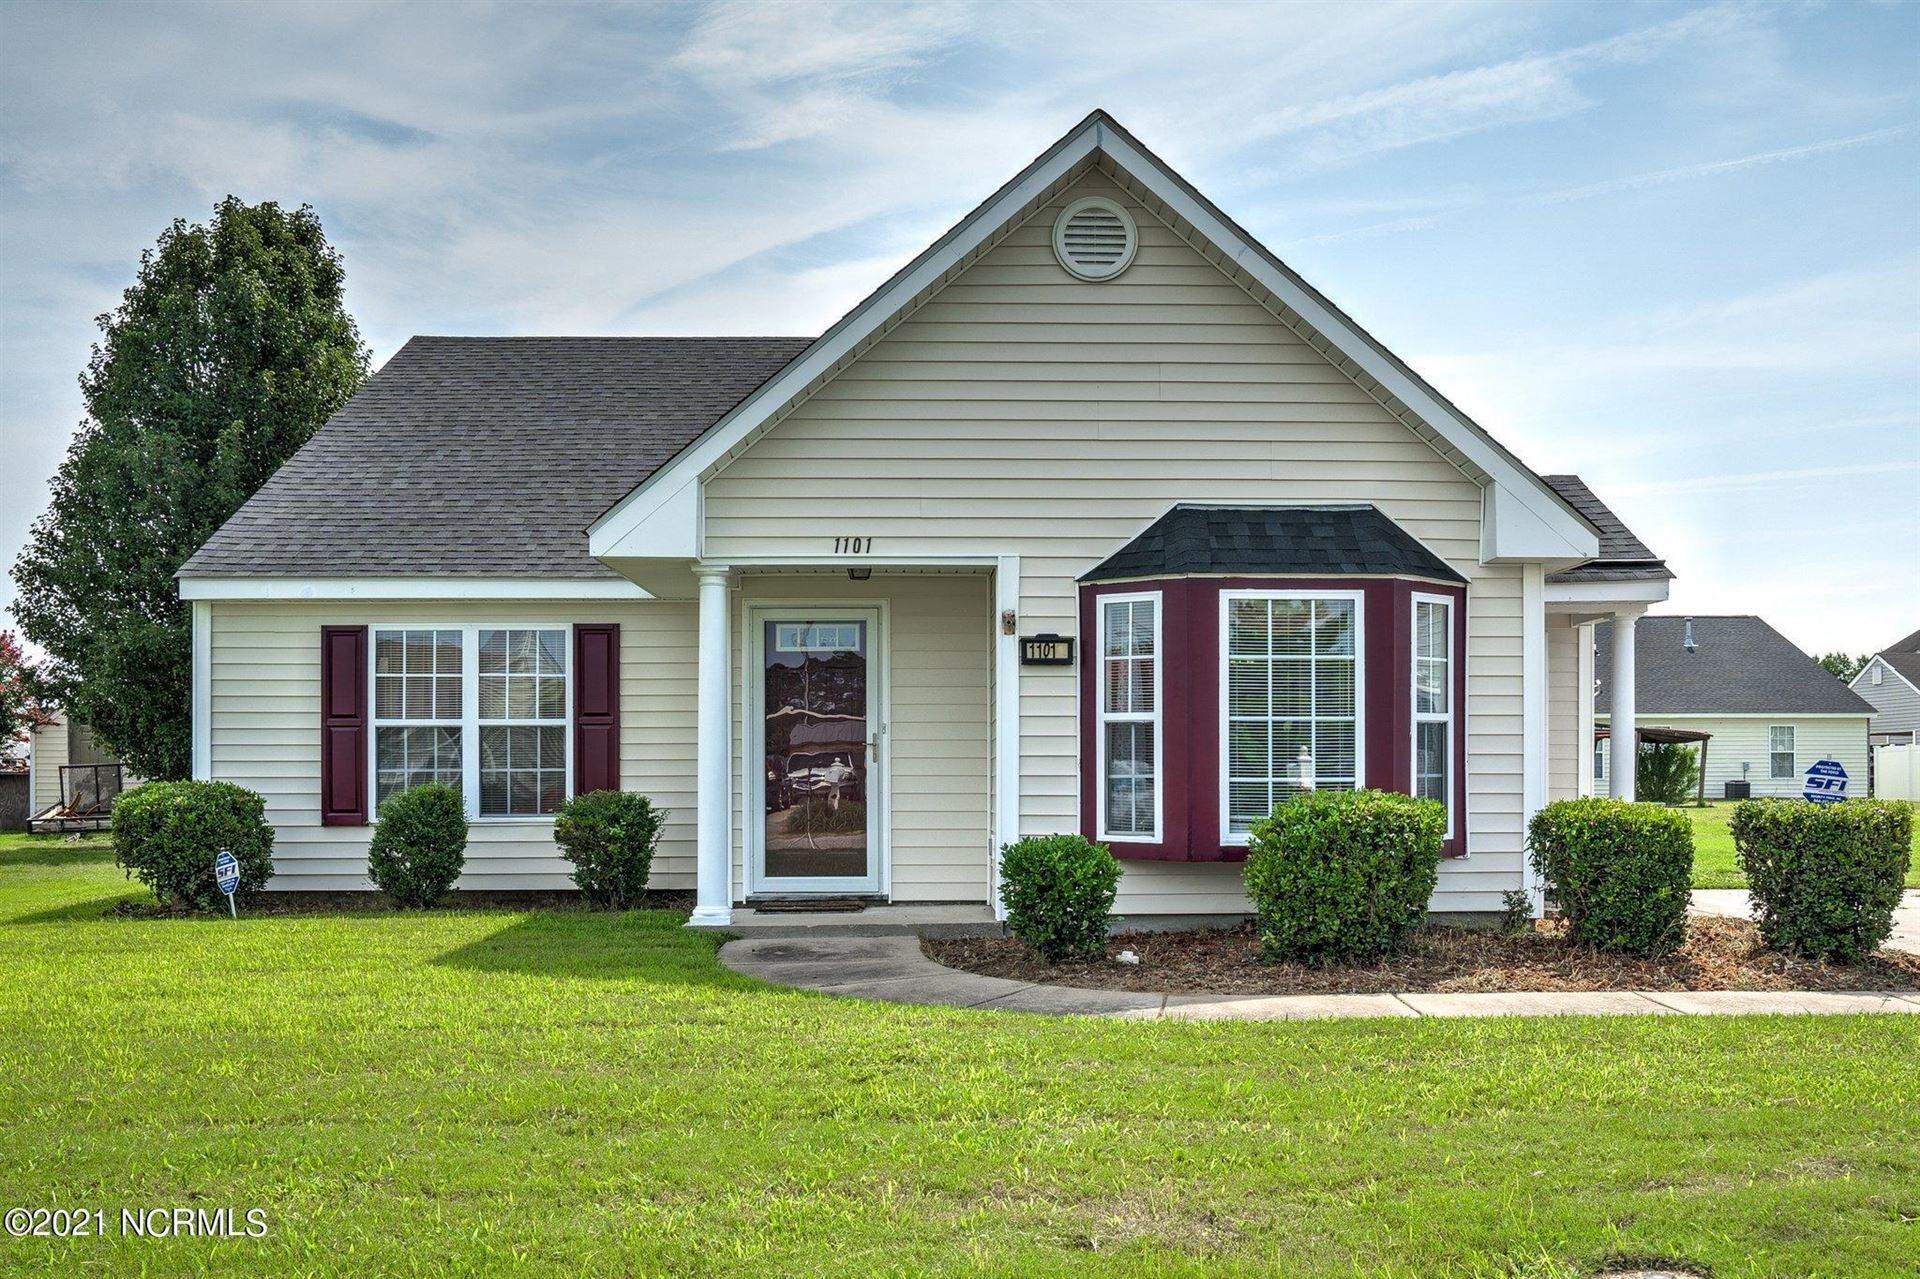 Photo of 1101 Centipede Drive, Rocky Mount, NC 27801 (MLS # 100283539)